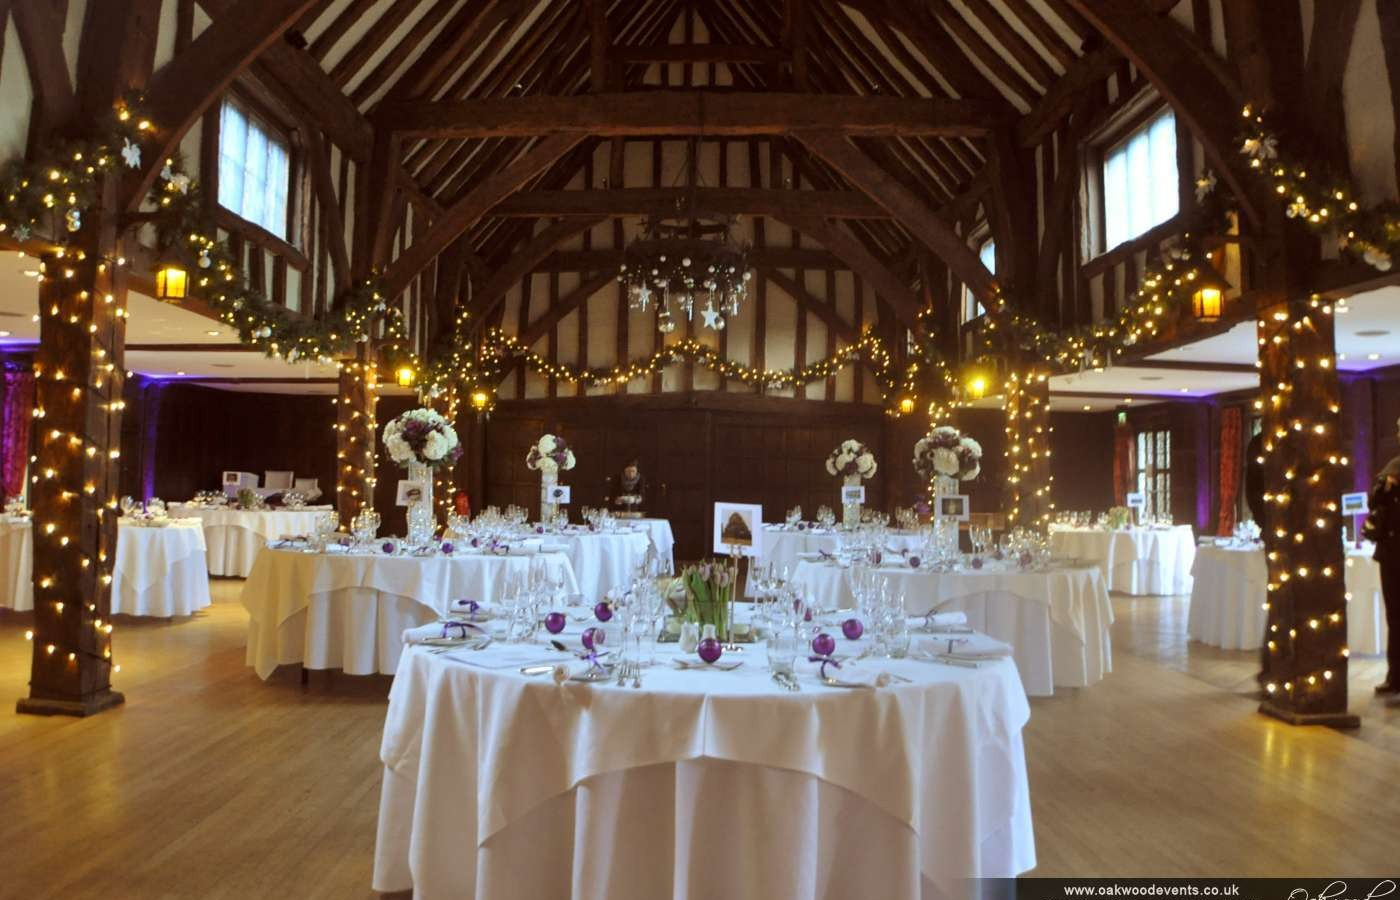 Blog Latest News From Oakwood Events